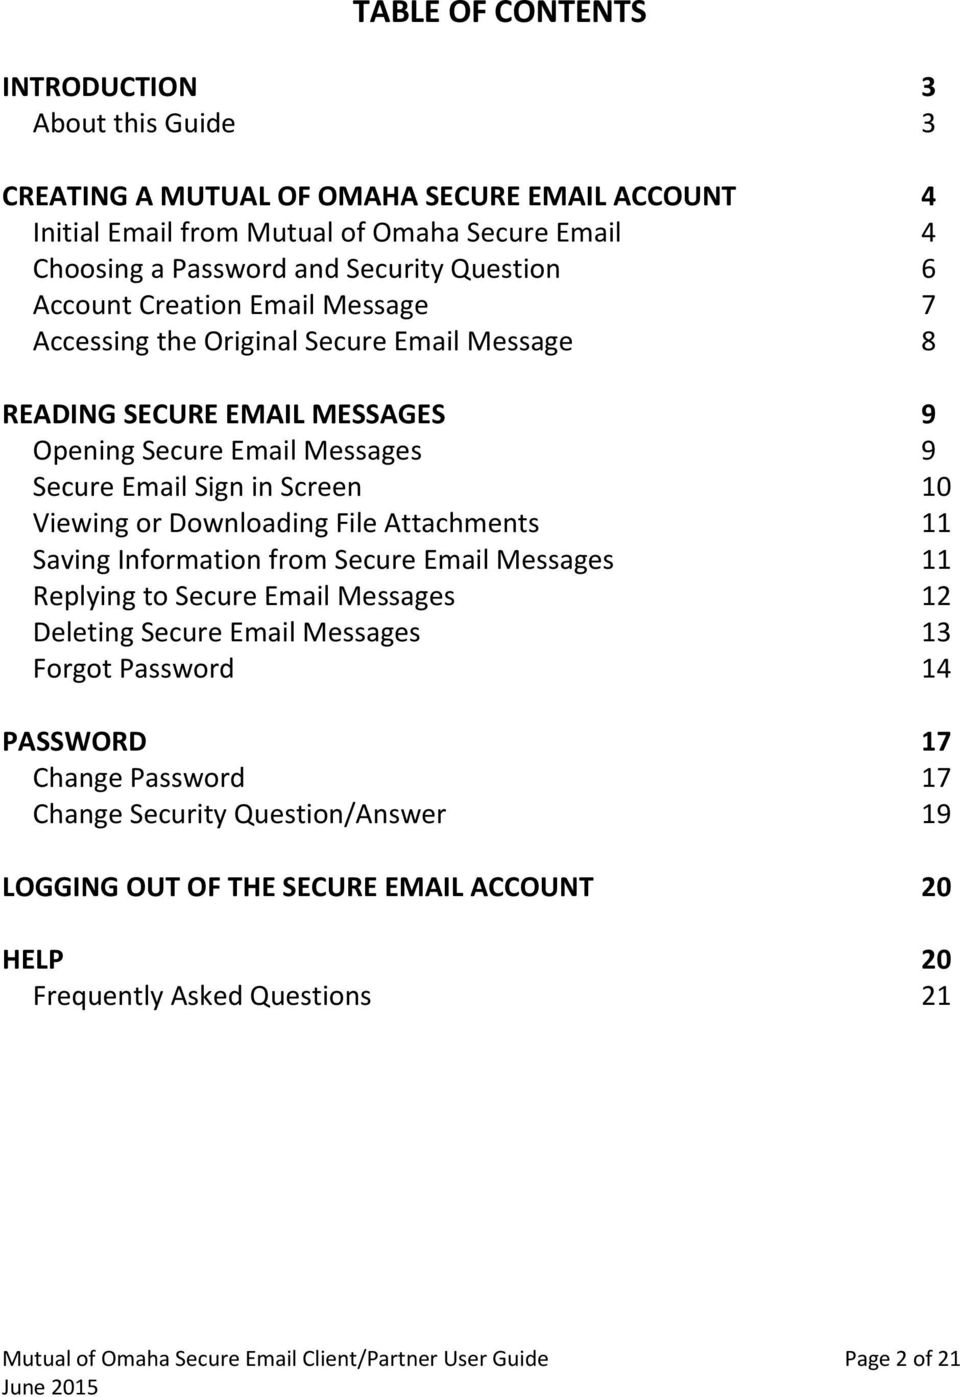 Viewing or Downloading File Attachments 11 Saving Information from Secure Email Messages 11 Replying to Secure Email Messages 12 Deleting Secure Email Messages 13 Forgot Password 14 PASSWORD